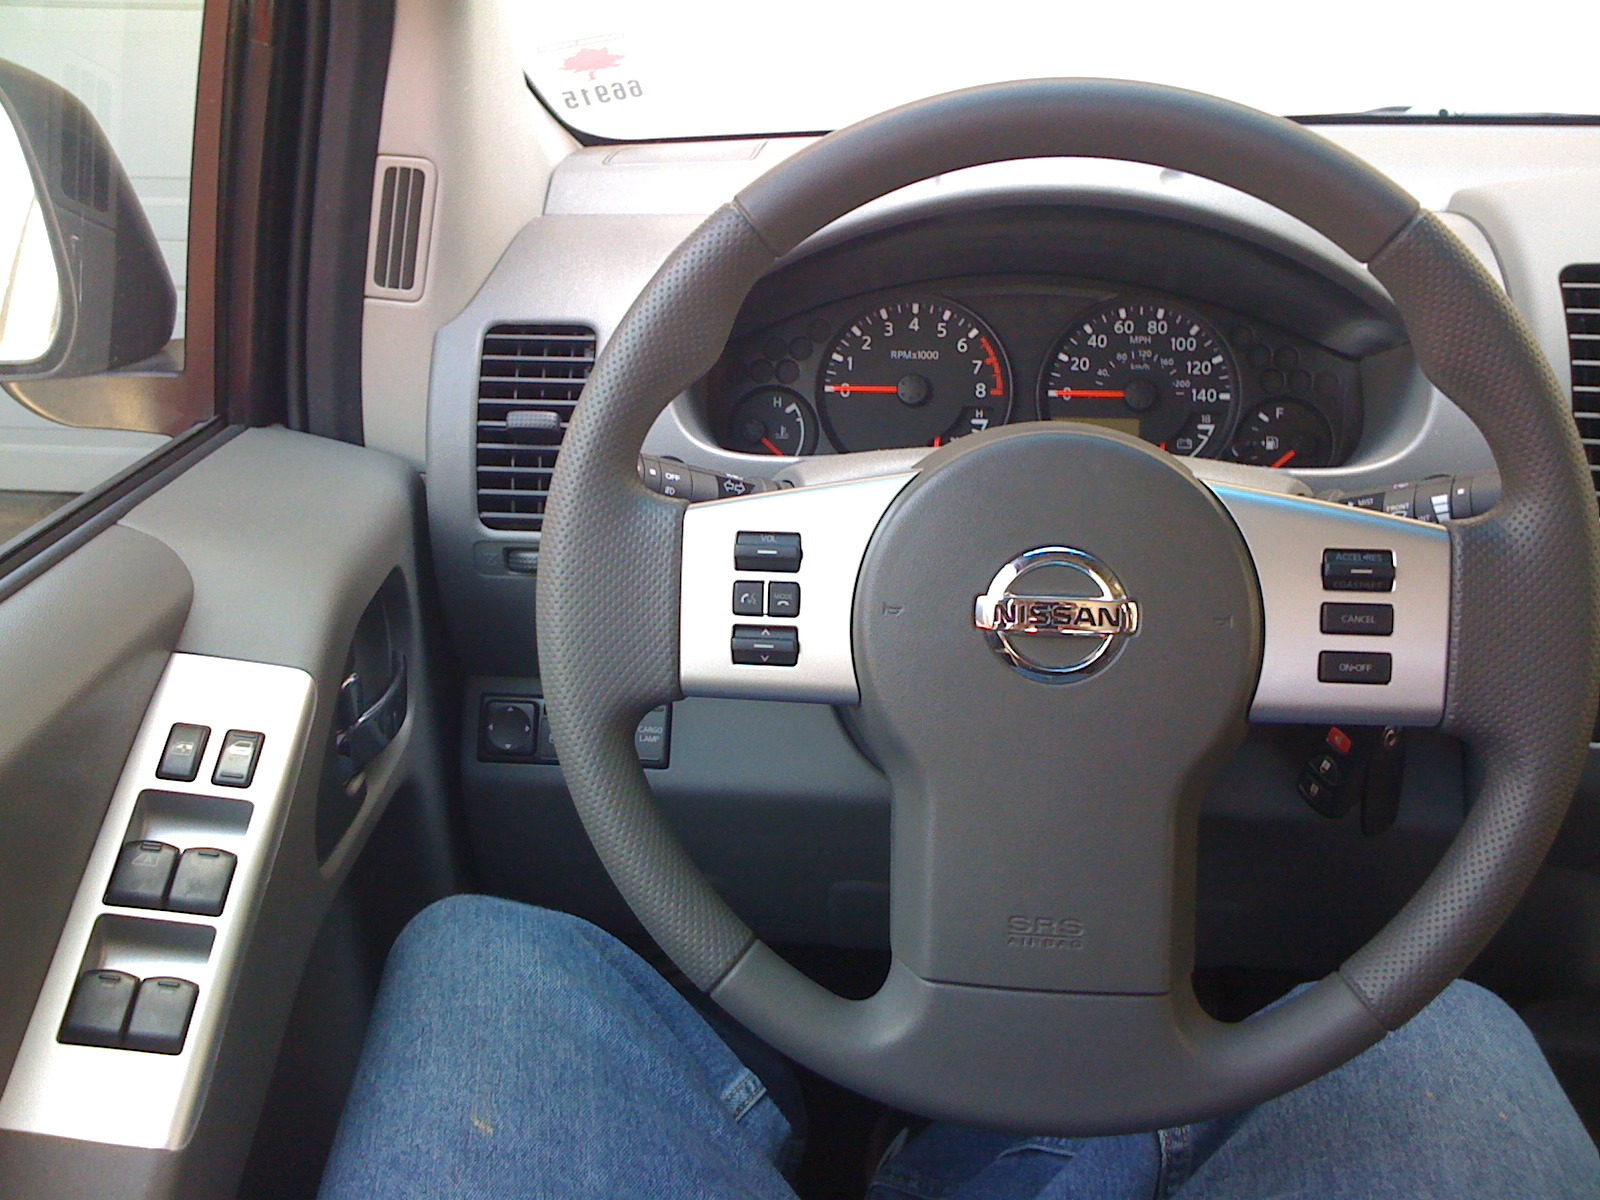 Pathfinder Audio Phone And Cruise Control Steering Wheel Control Installed Nissan Frontier Forum